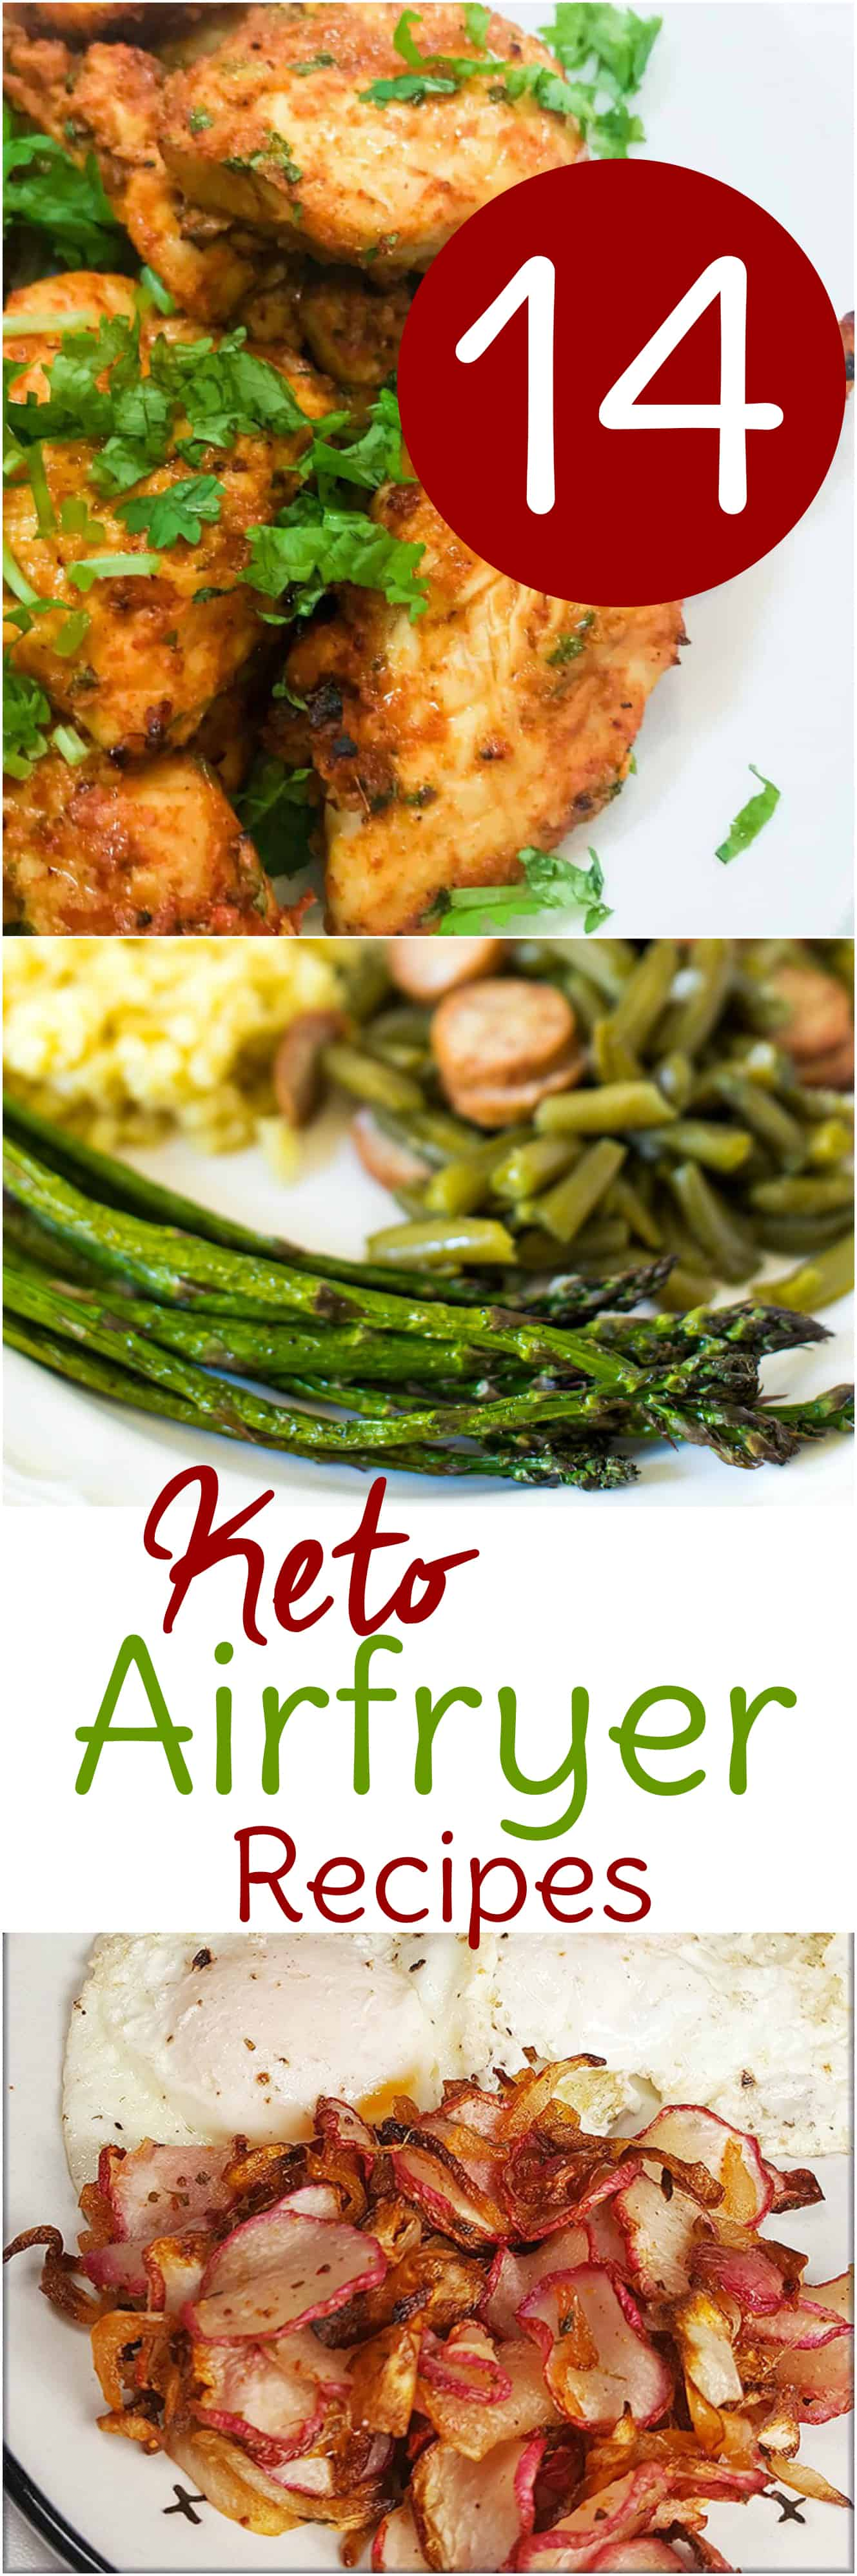 14 keto Air Fryer recipes to make the low carb/high-fat way of eating even easier.